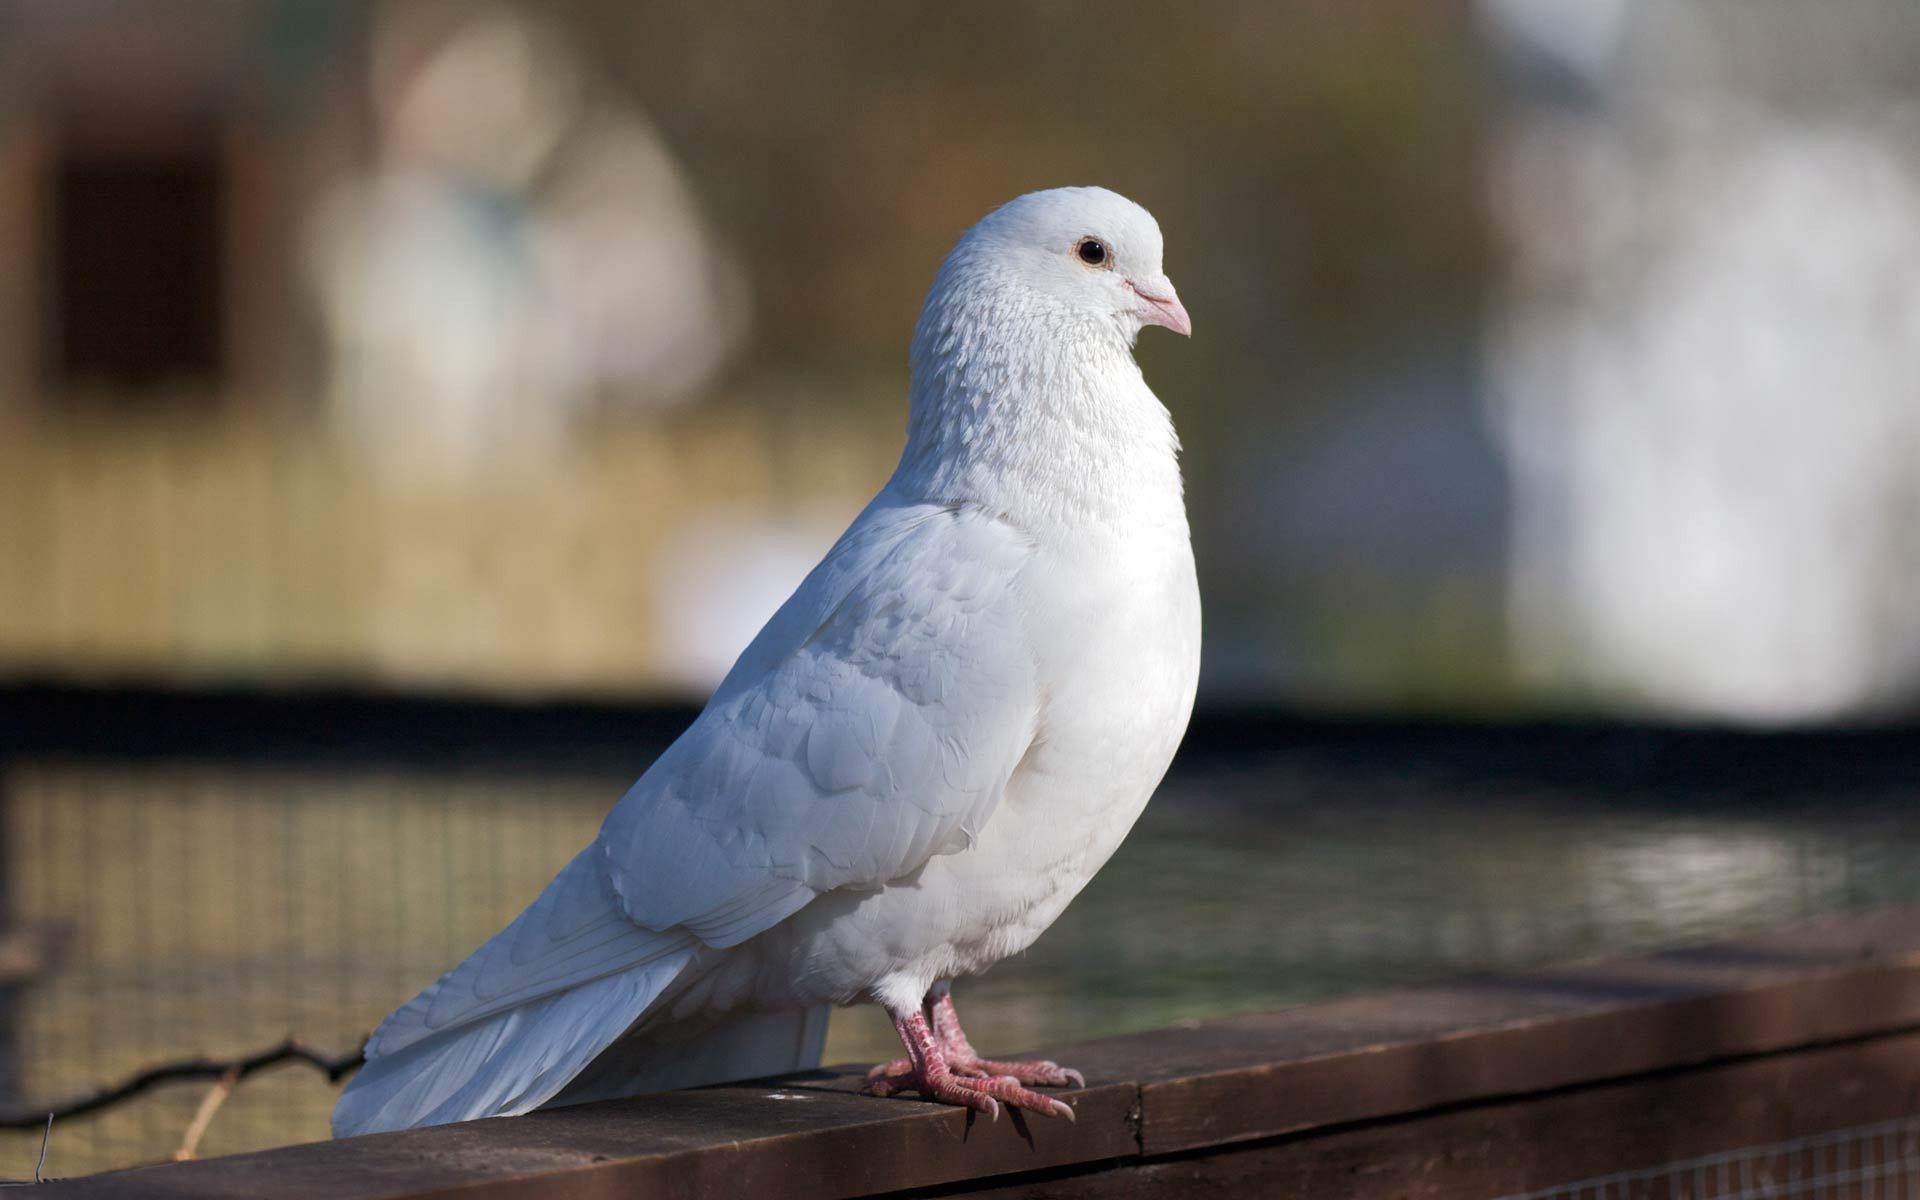 Pigeon Birds Free Download High Quality Hd Wallpapers Of Pigeon